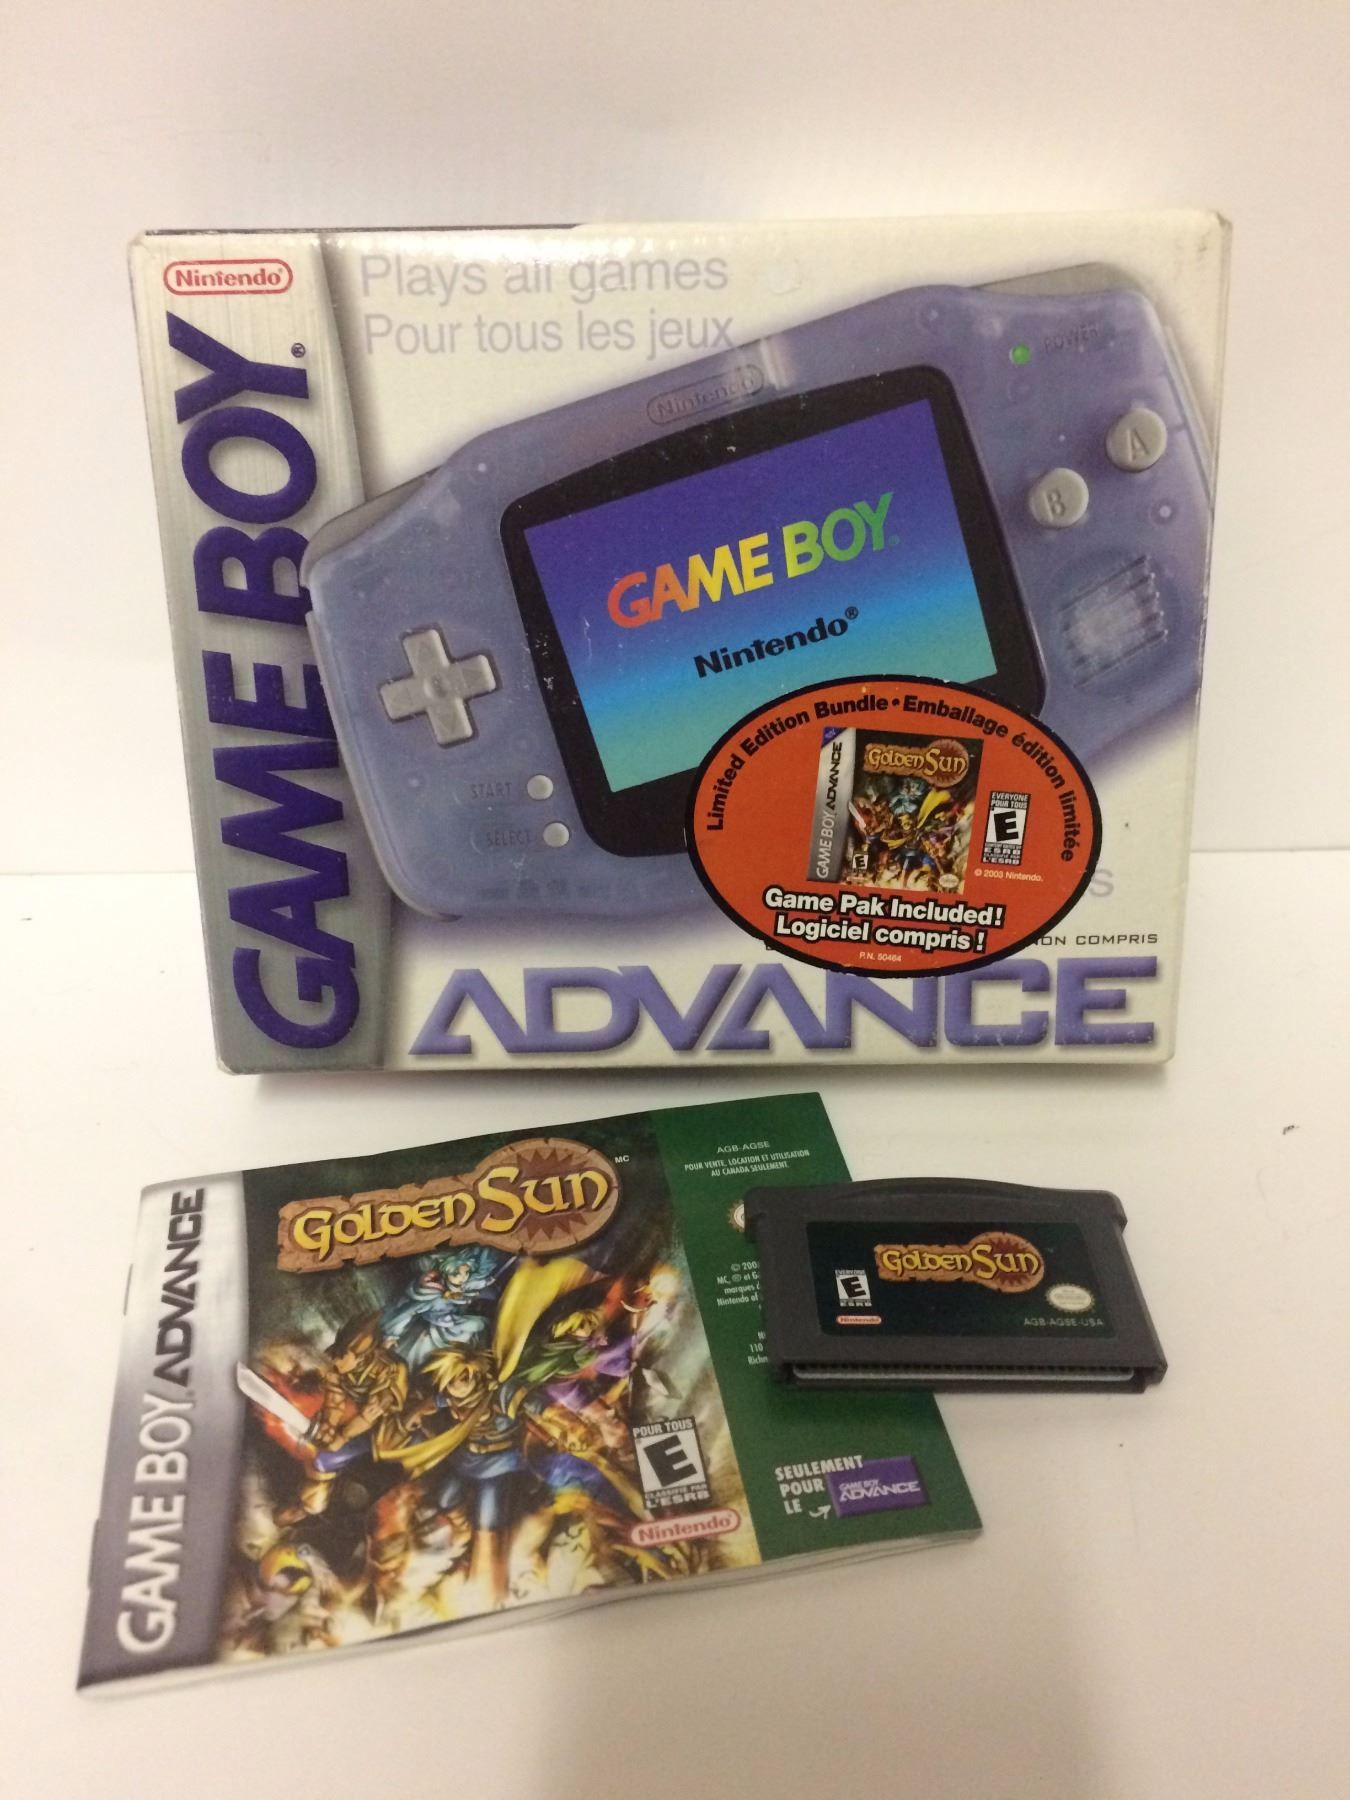 GAME BOY ADVANCE GAMING CONSOLE W/ GOLDEN SUN VIDEO GAME